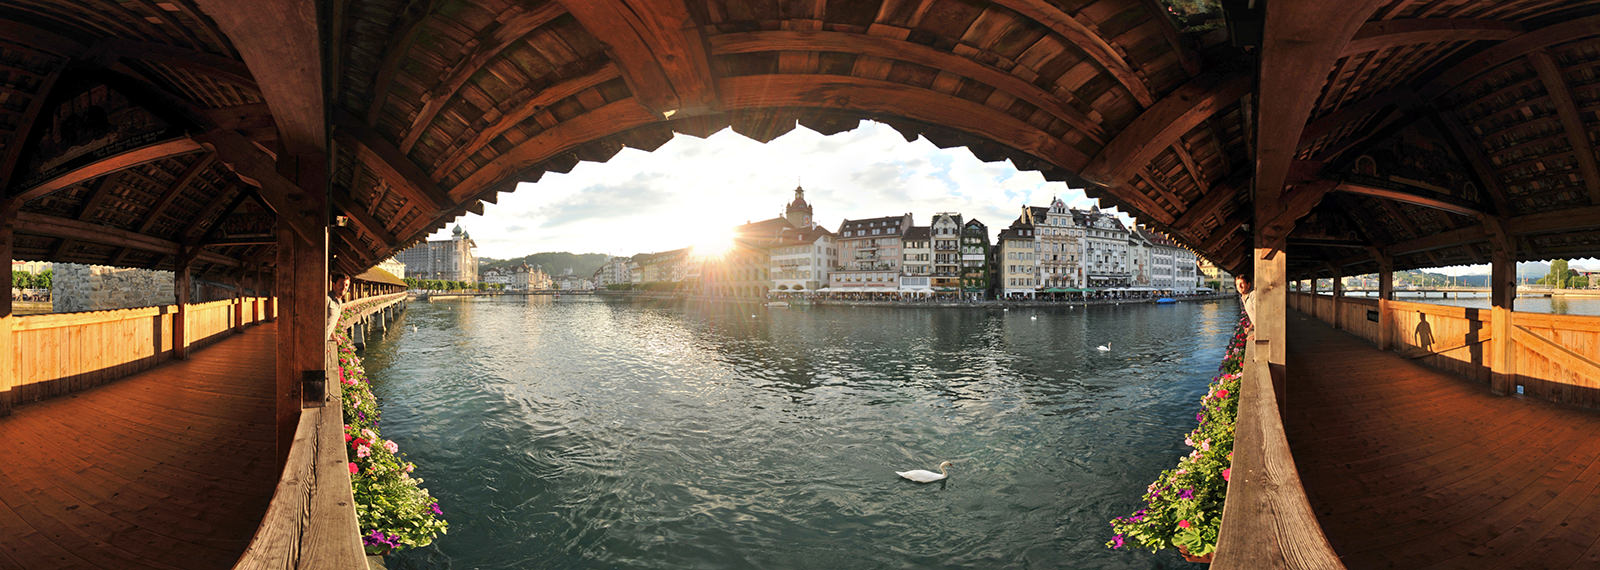 Kapellbrucke, Chapel Bridge, Luzern - Virtual tour